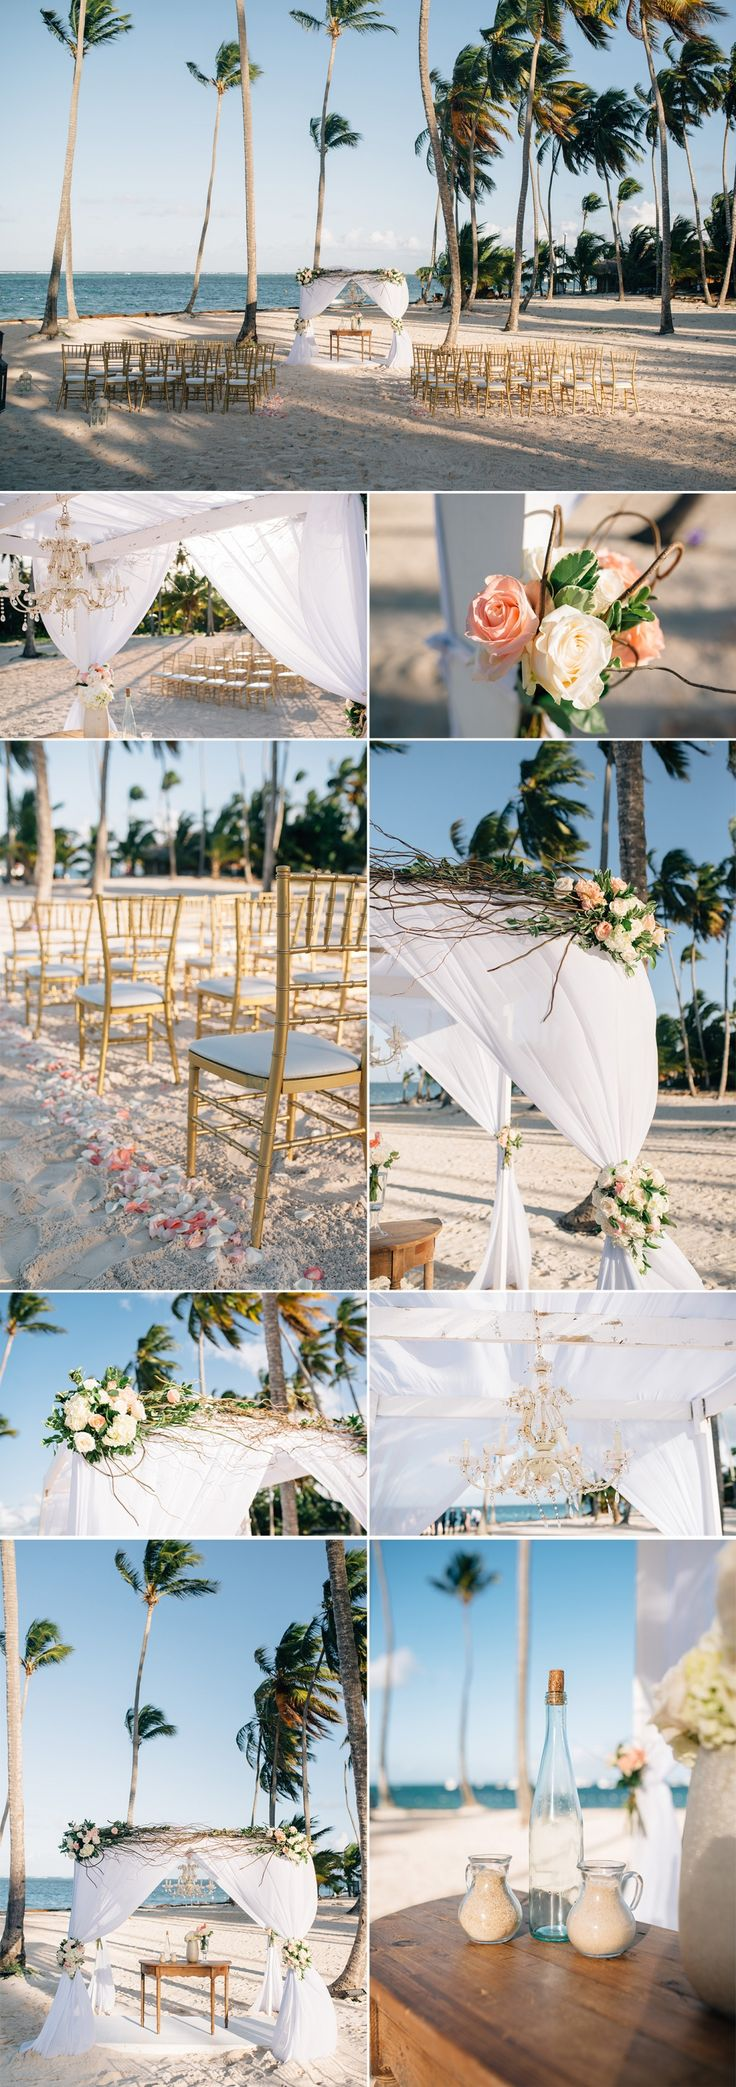 Your wedding bags for a grand getaway today s destination wedding - Find This Pin And More On Destination Wedding By Lissetteld86